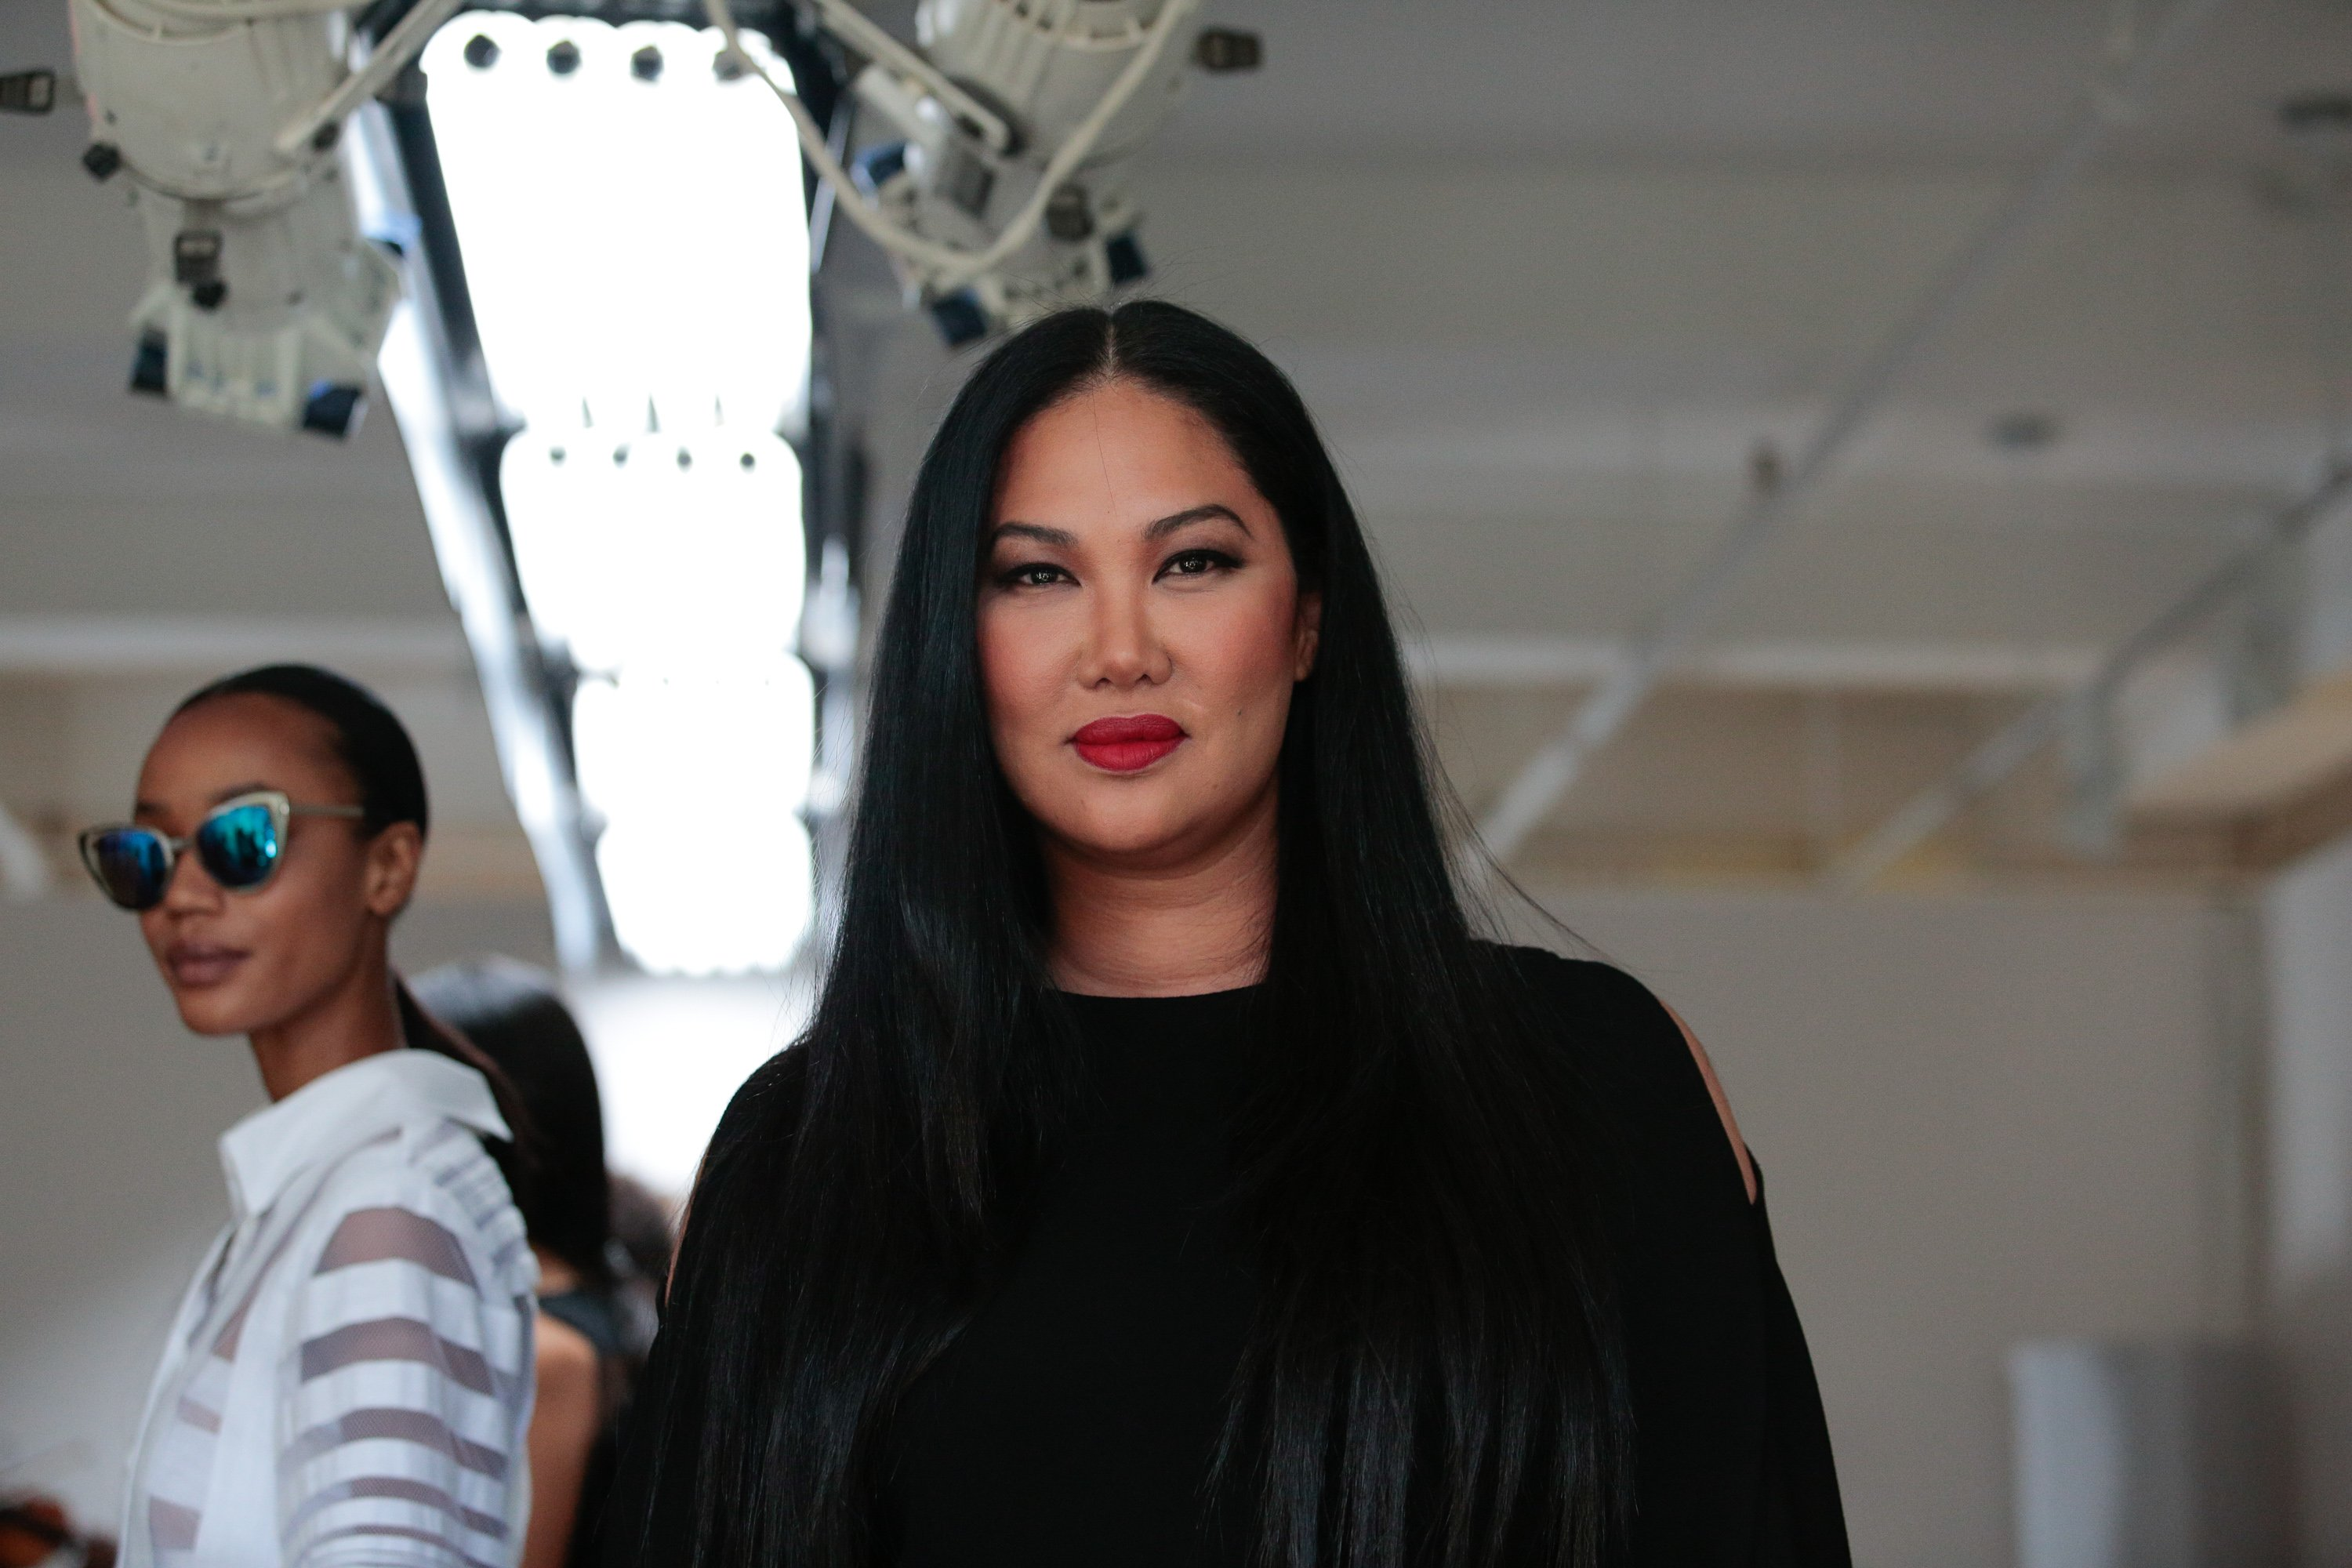 Kimora Lee Simmons pictured during New York Fashion Week at The Gallery, Skylight at Clarkson Square on September 14, 2016 in New York City. | Source: Getty Images